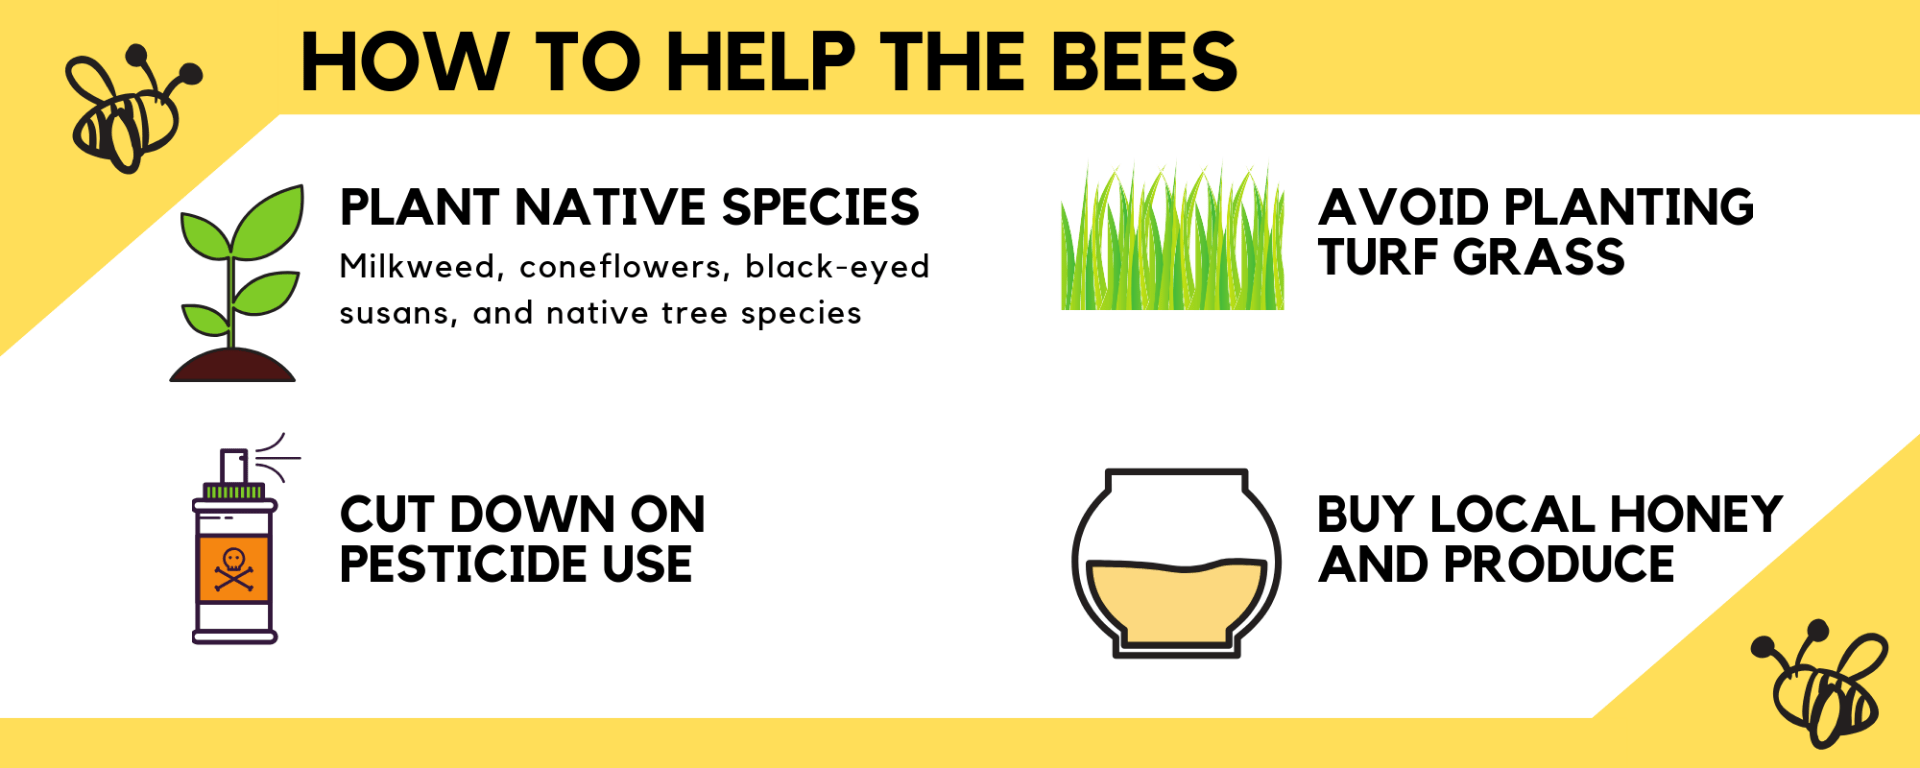 How to help bees: 1) plant native plant species like milkweed, cone flowers, black-eyed susans and native tree species , 2) avoid planting turf grass, cut down on pesticide use, and buy local honey and produce.